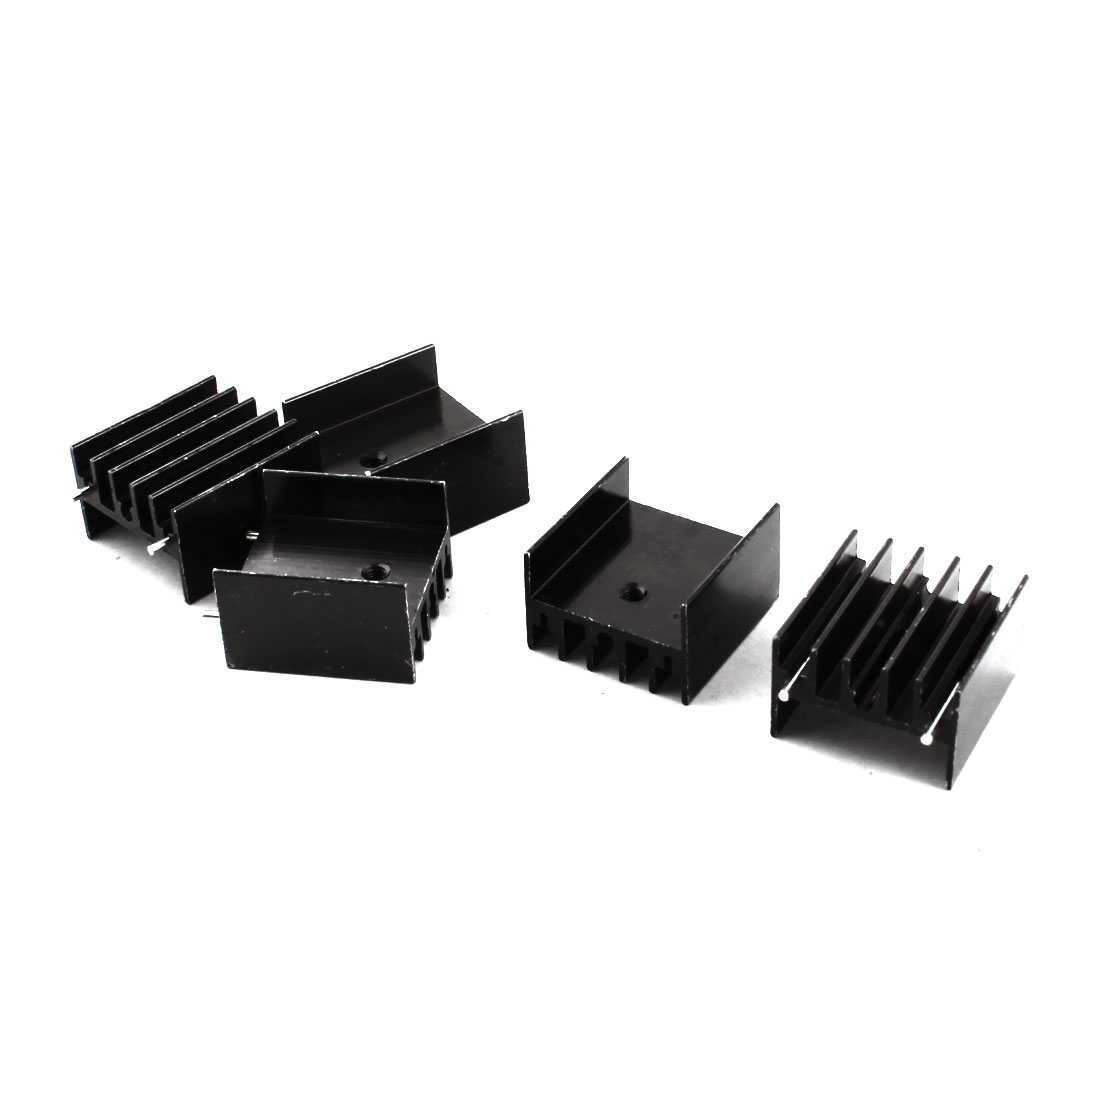 5Pcs Black Aluminum Cooler Cooling Fin Heat Sink Heatsink 23x16x25mm for PCB Board